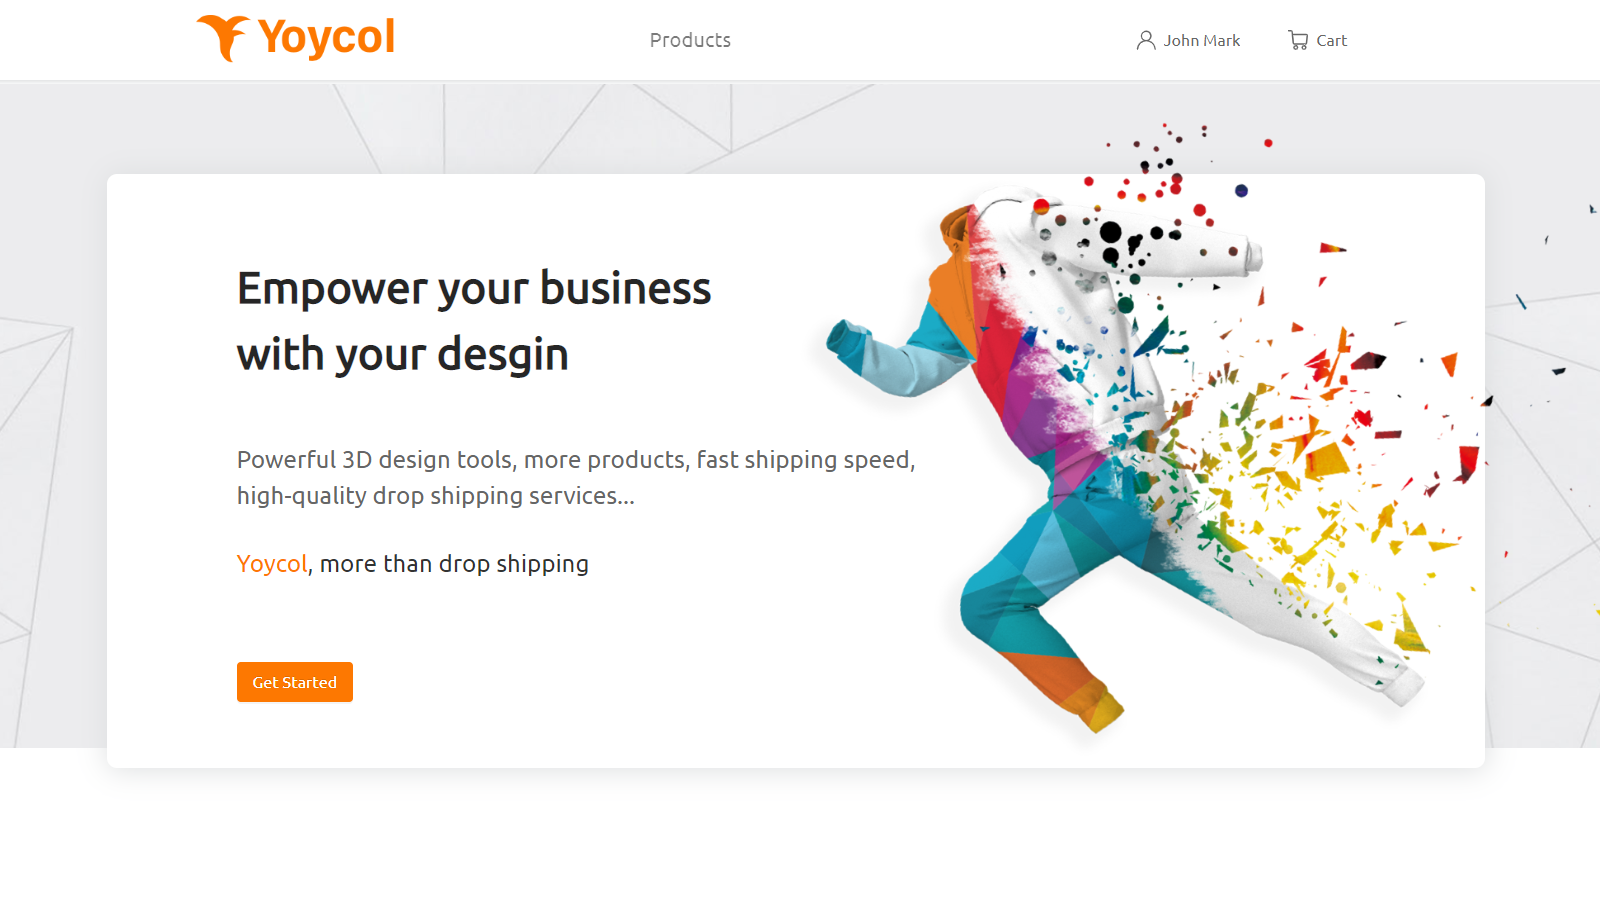 Print on demand and dropshipping